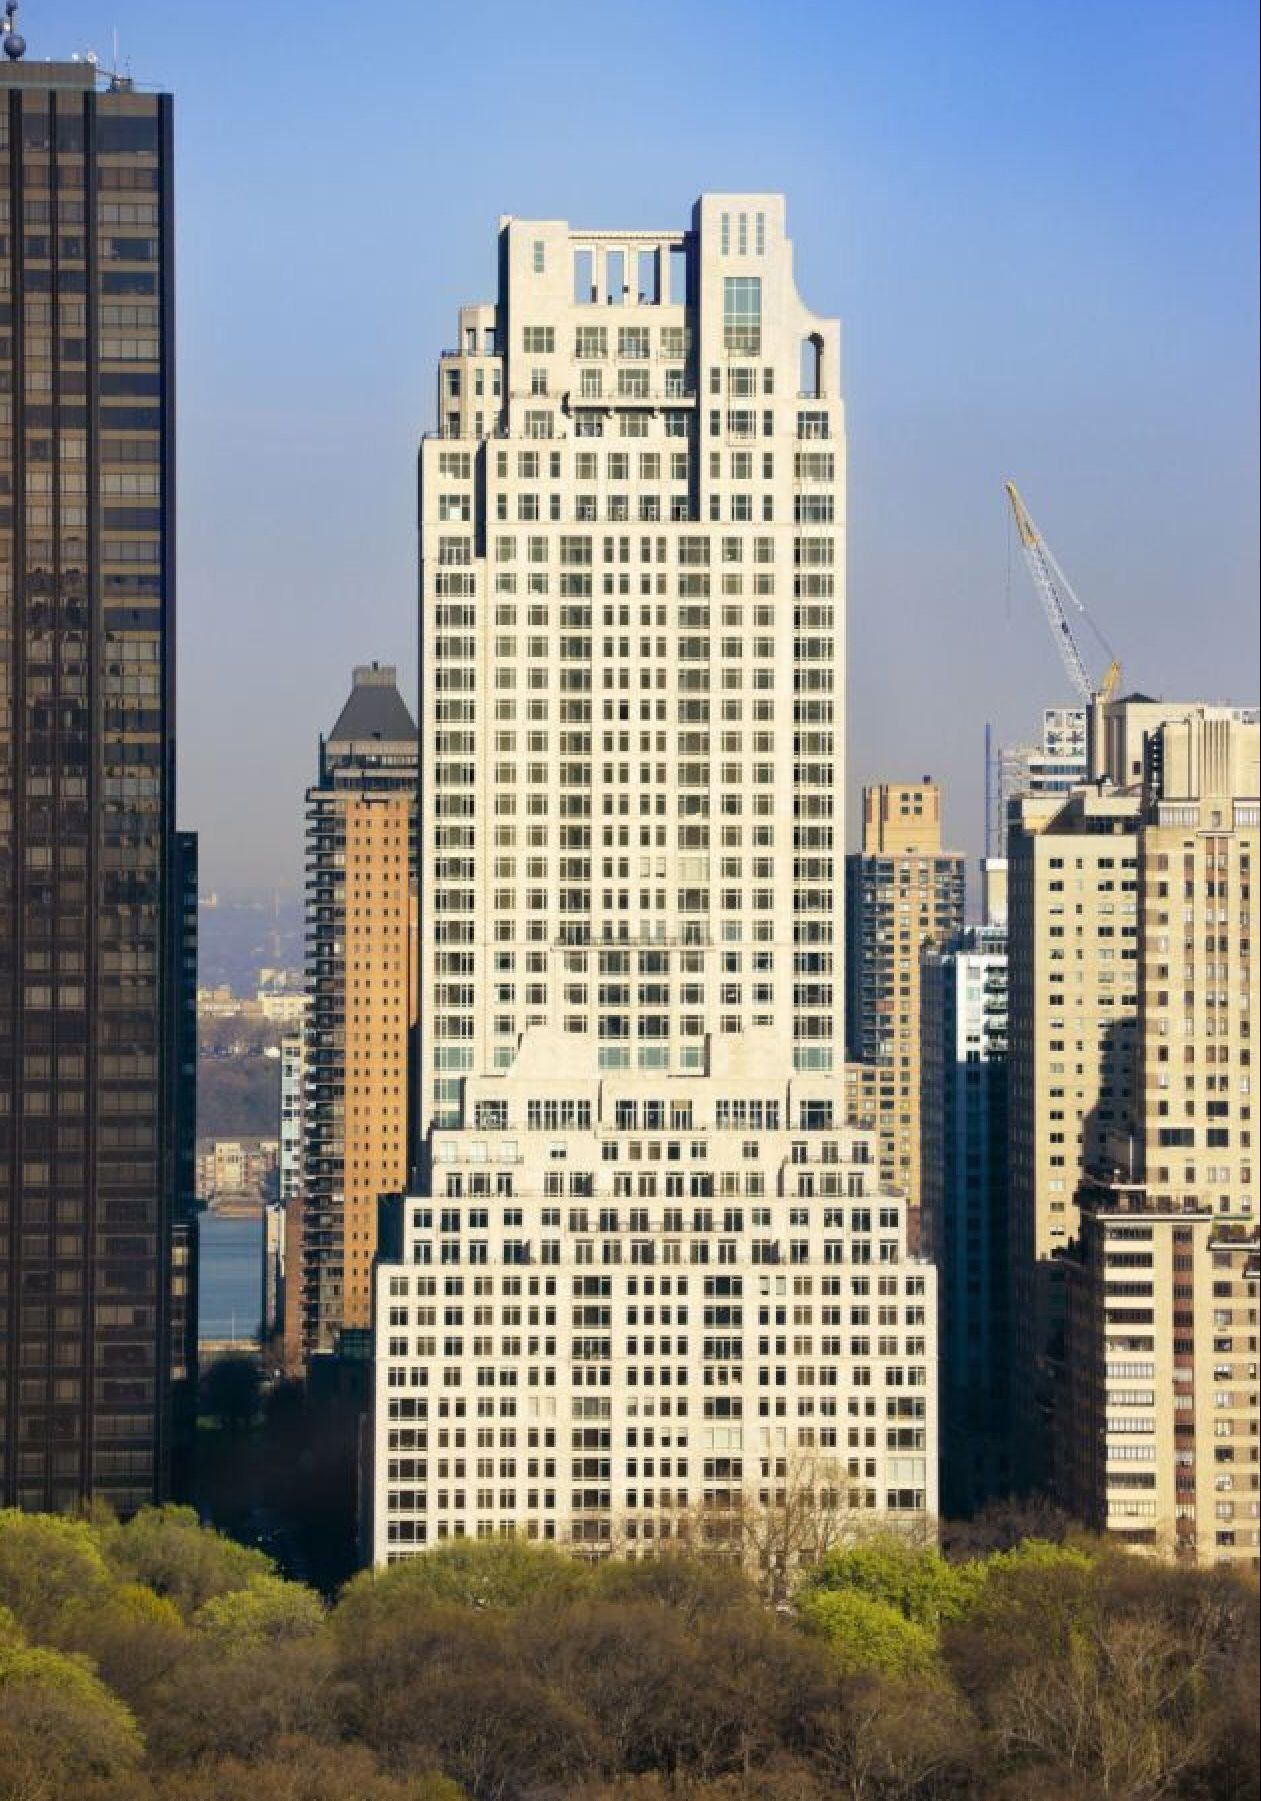 New York City Announces New Real Estate Tax Rates: 15 Central Park West, New York, NY